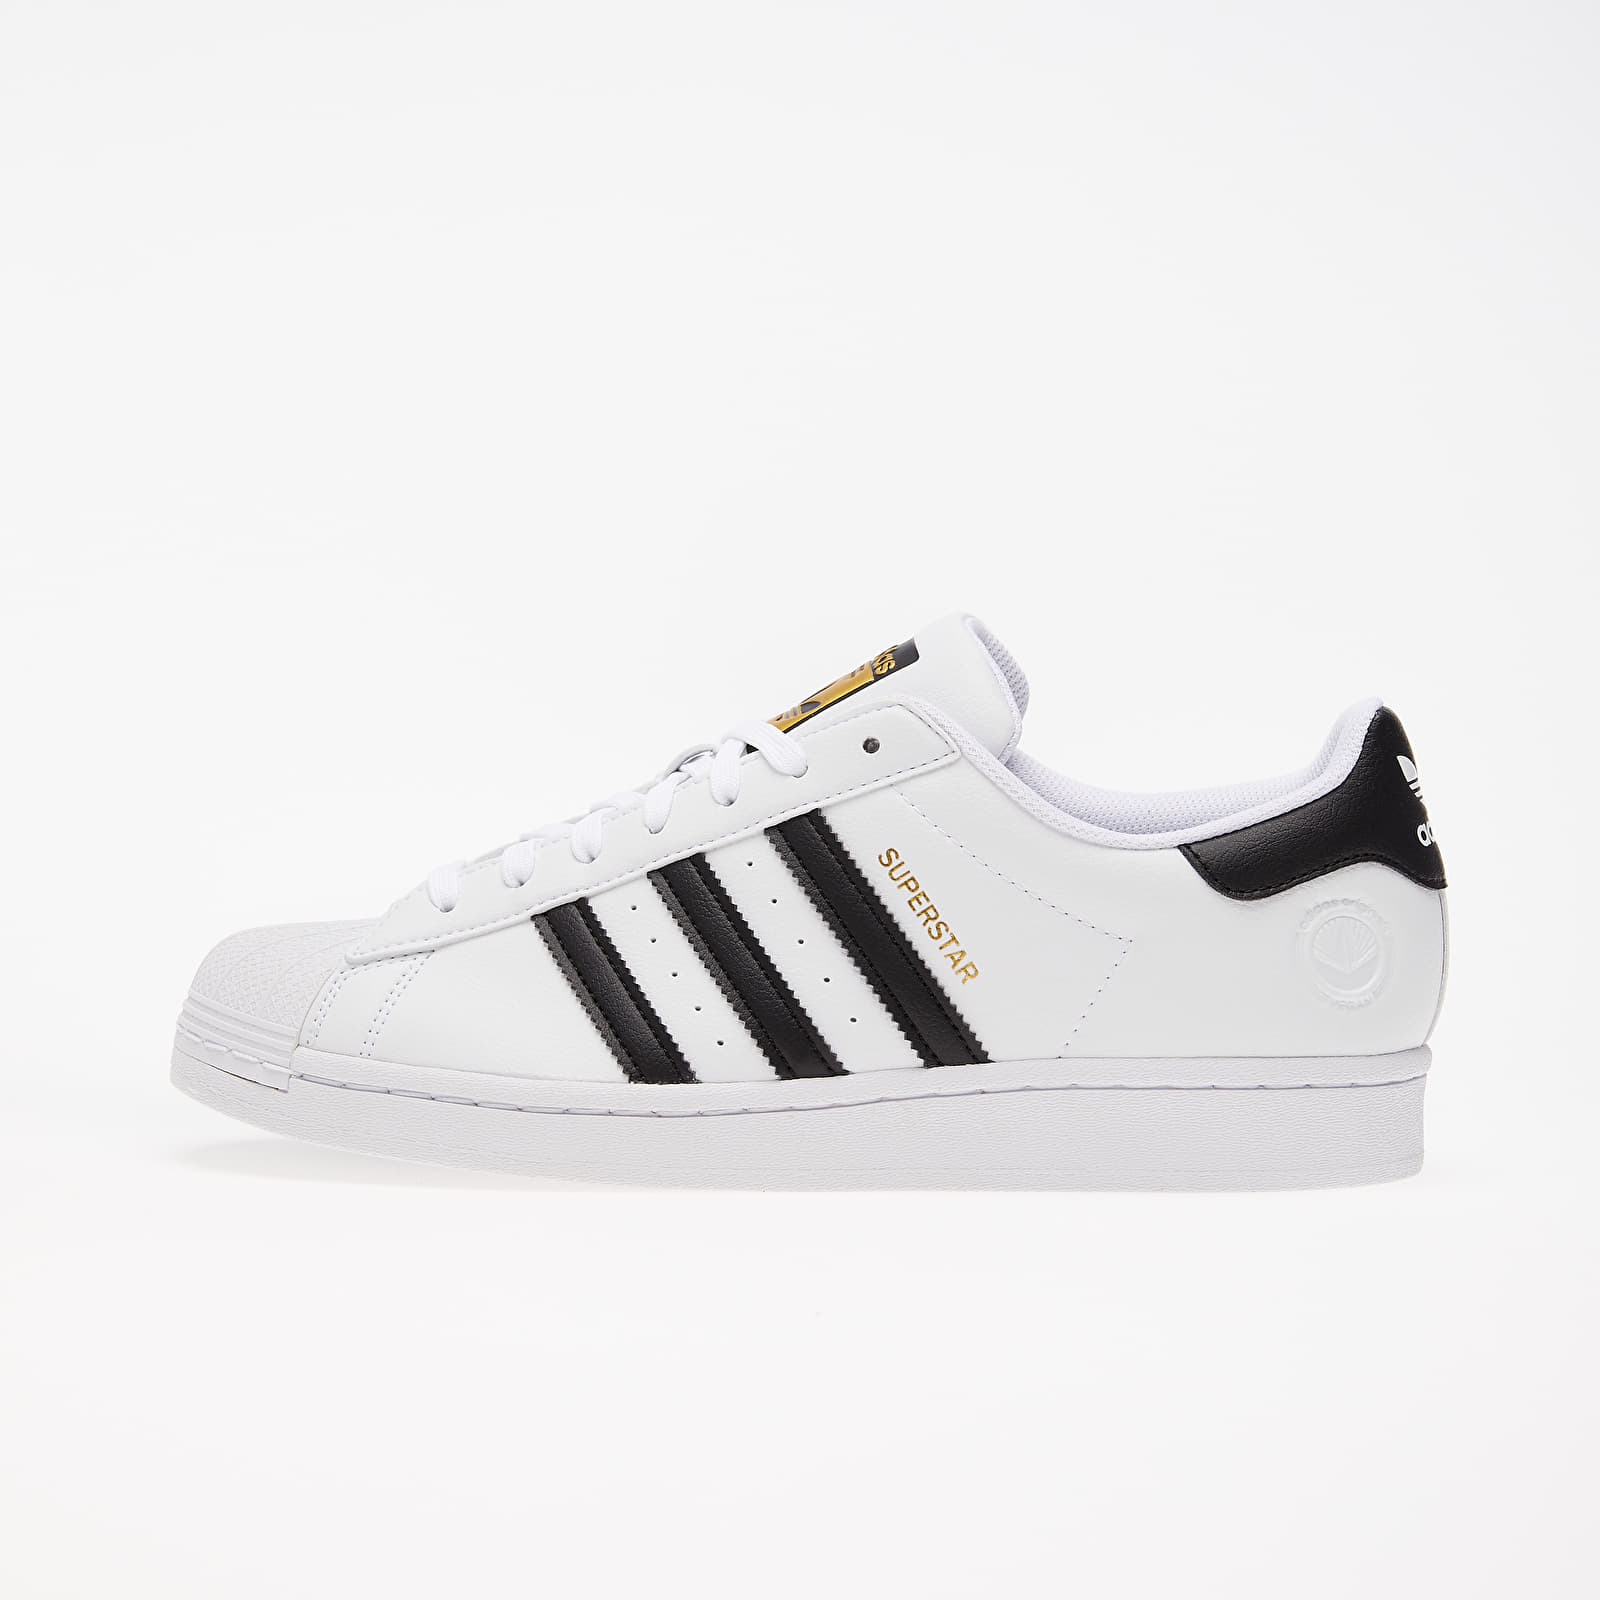 Men's shoes adidas Superstar Vegan Ftw White/ Core Black/ Green